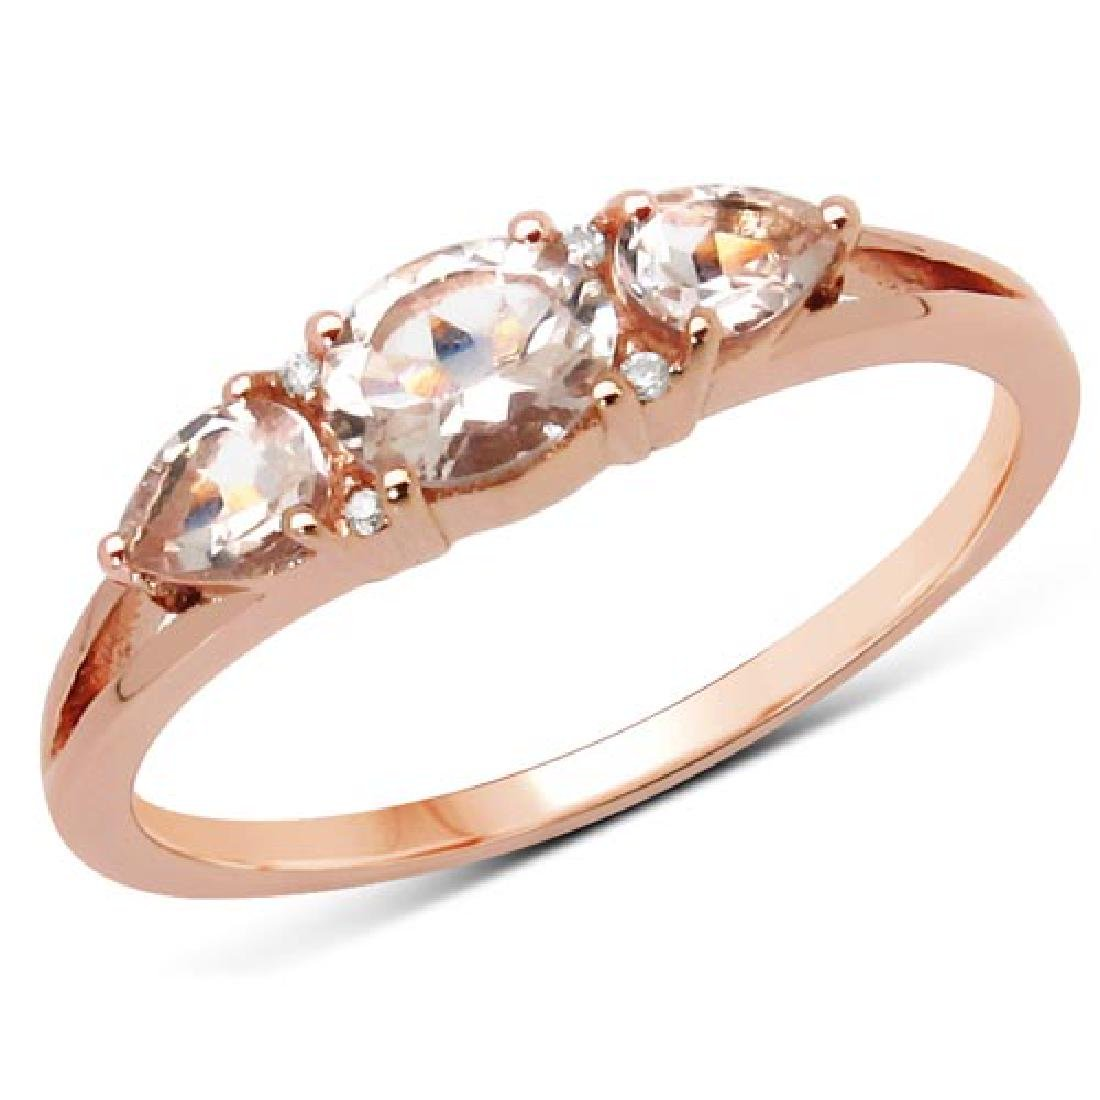 0.52 Carat Genuine Morganite and White Diamond 14K Rose